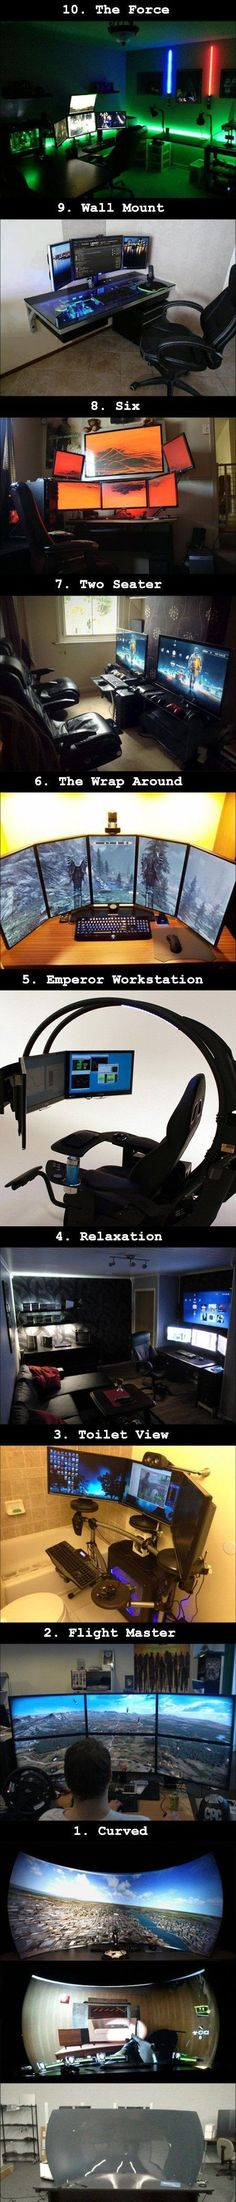 Tired of your laptop or boring desktop computer? Here are 10 awesome computer setups that any geek would love. - My DIY Tips Pc Gaming Setup, Computer Setup, Pc Setup, Gaming Computer, Mundo Dos Games, Custom Pc, Cool Technology, Geek Culture, Tech Gadgets